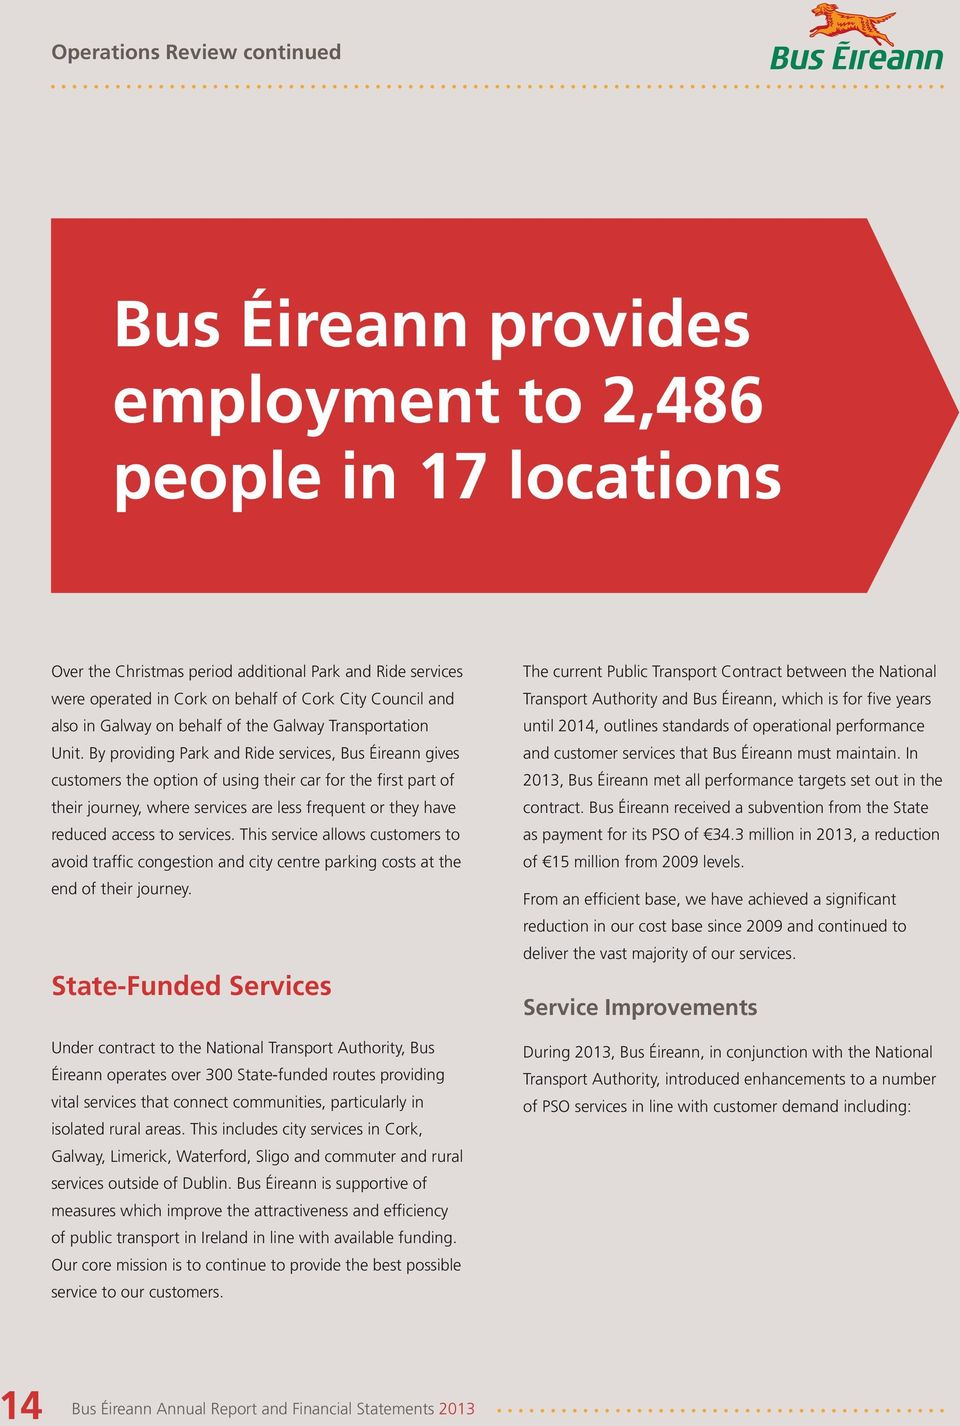 By providing Park and Ride services, Bus Éireann gives customers the option of using their car for the first part of their journey, where services are less frequent or they have reduced access to